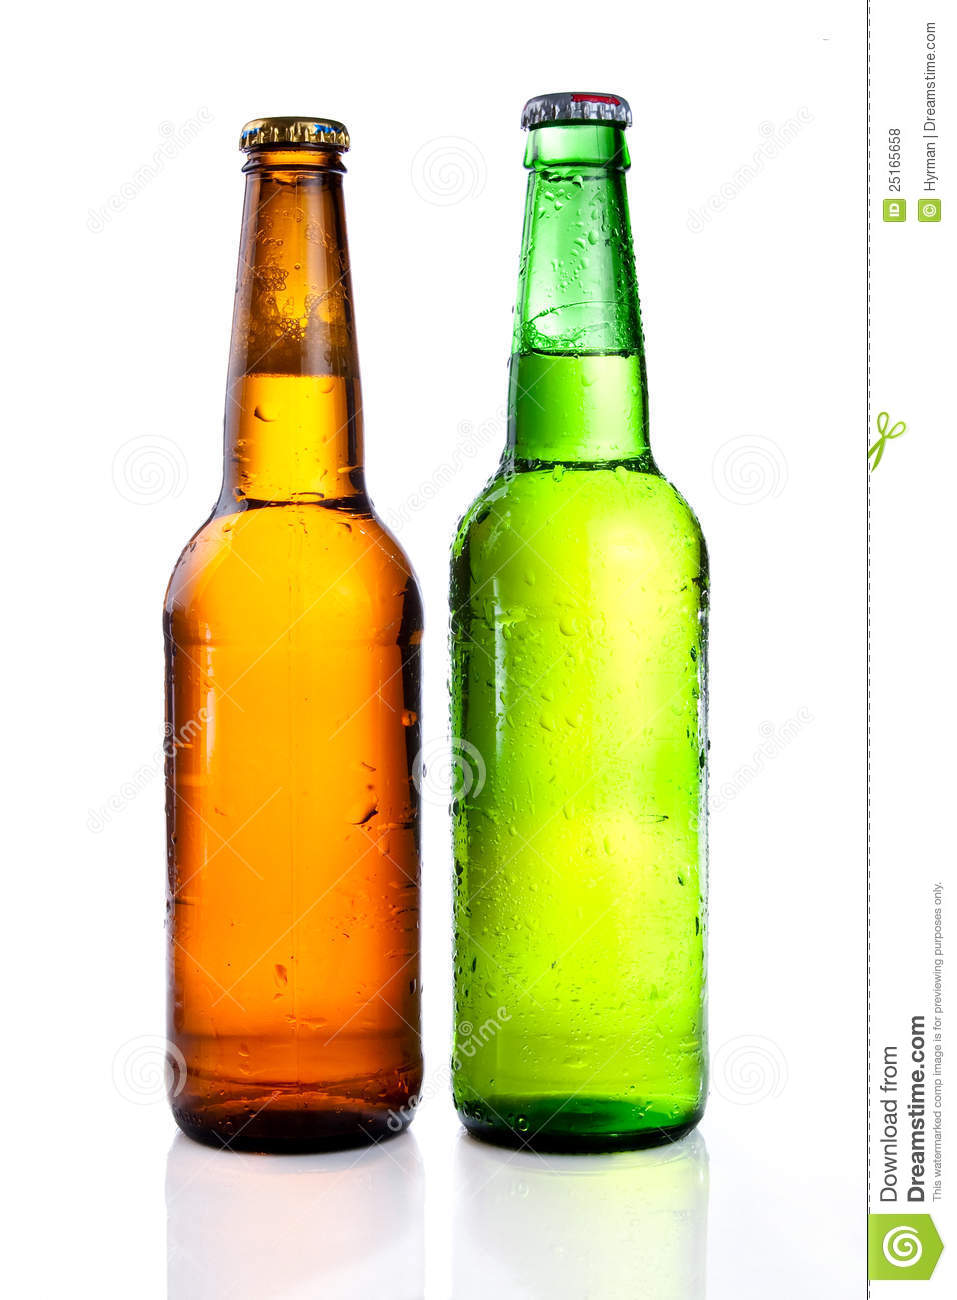 Green and brown beer bottle with drops drink without label on a white